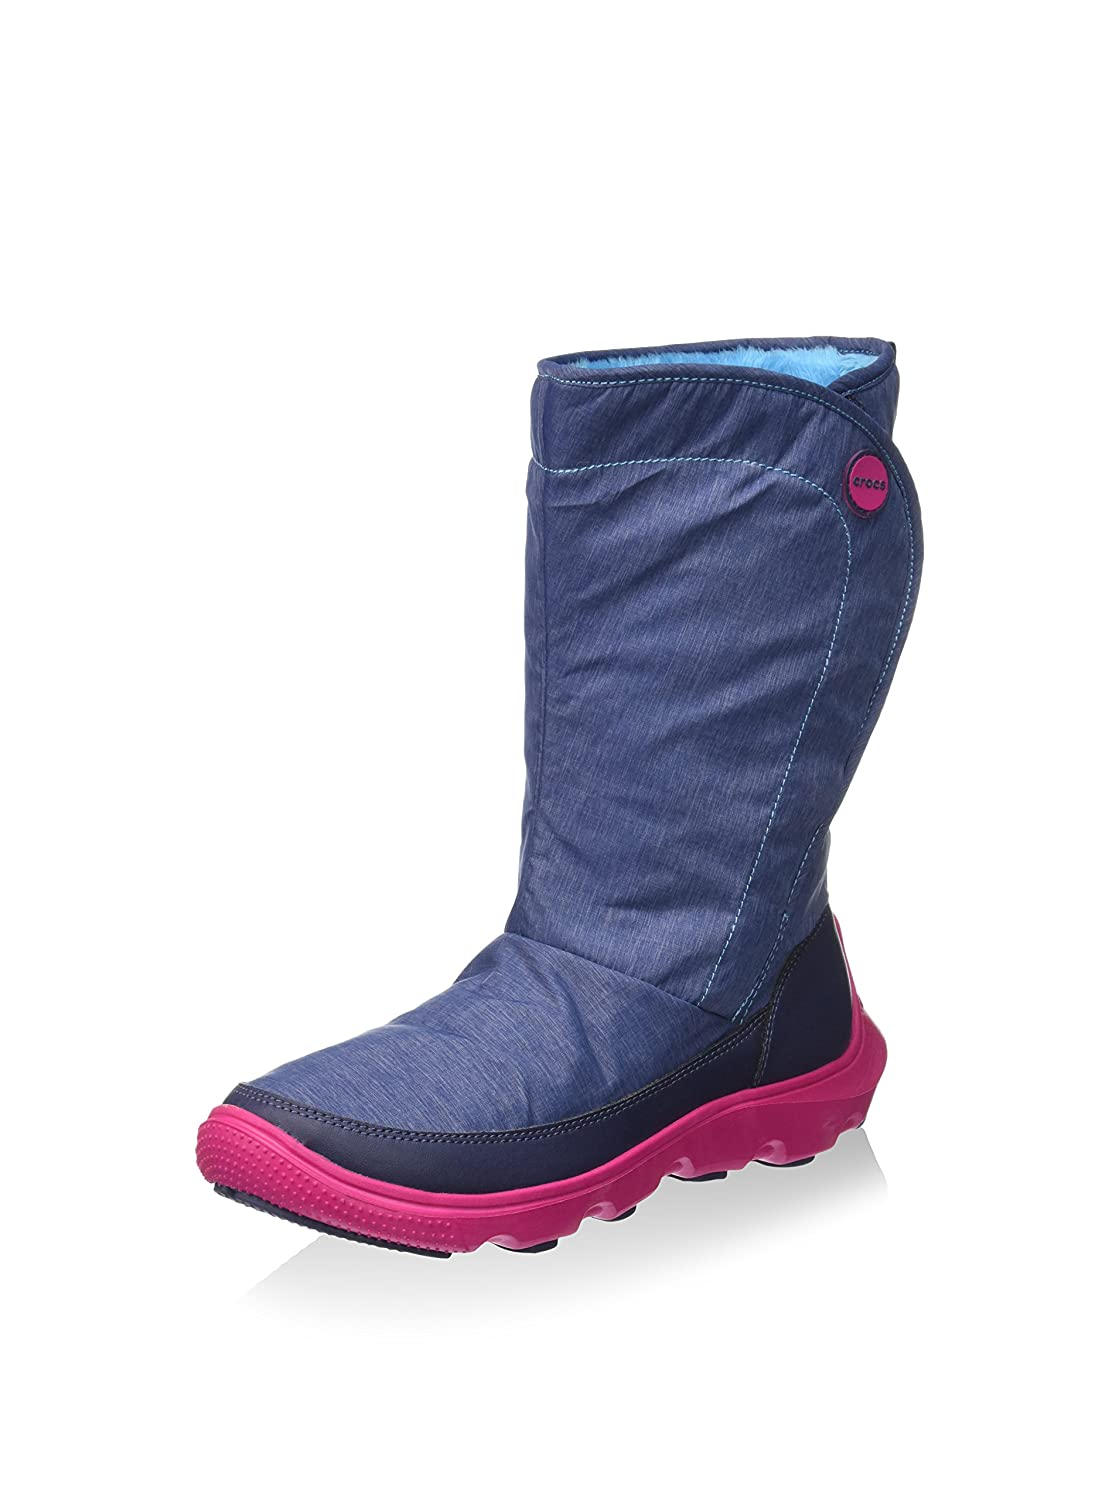 Crocs Duet Busy Day Boot Day W, Bottes Duet Femme Pink) Bleu (Nautical Navy/Candy Pink) 629420a - boatplans.space